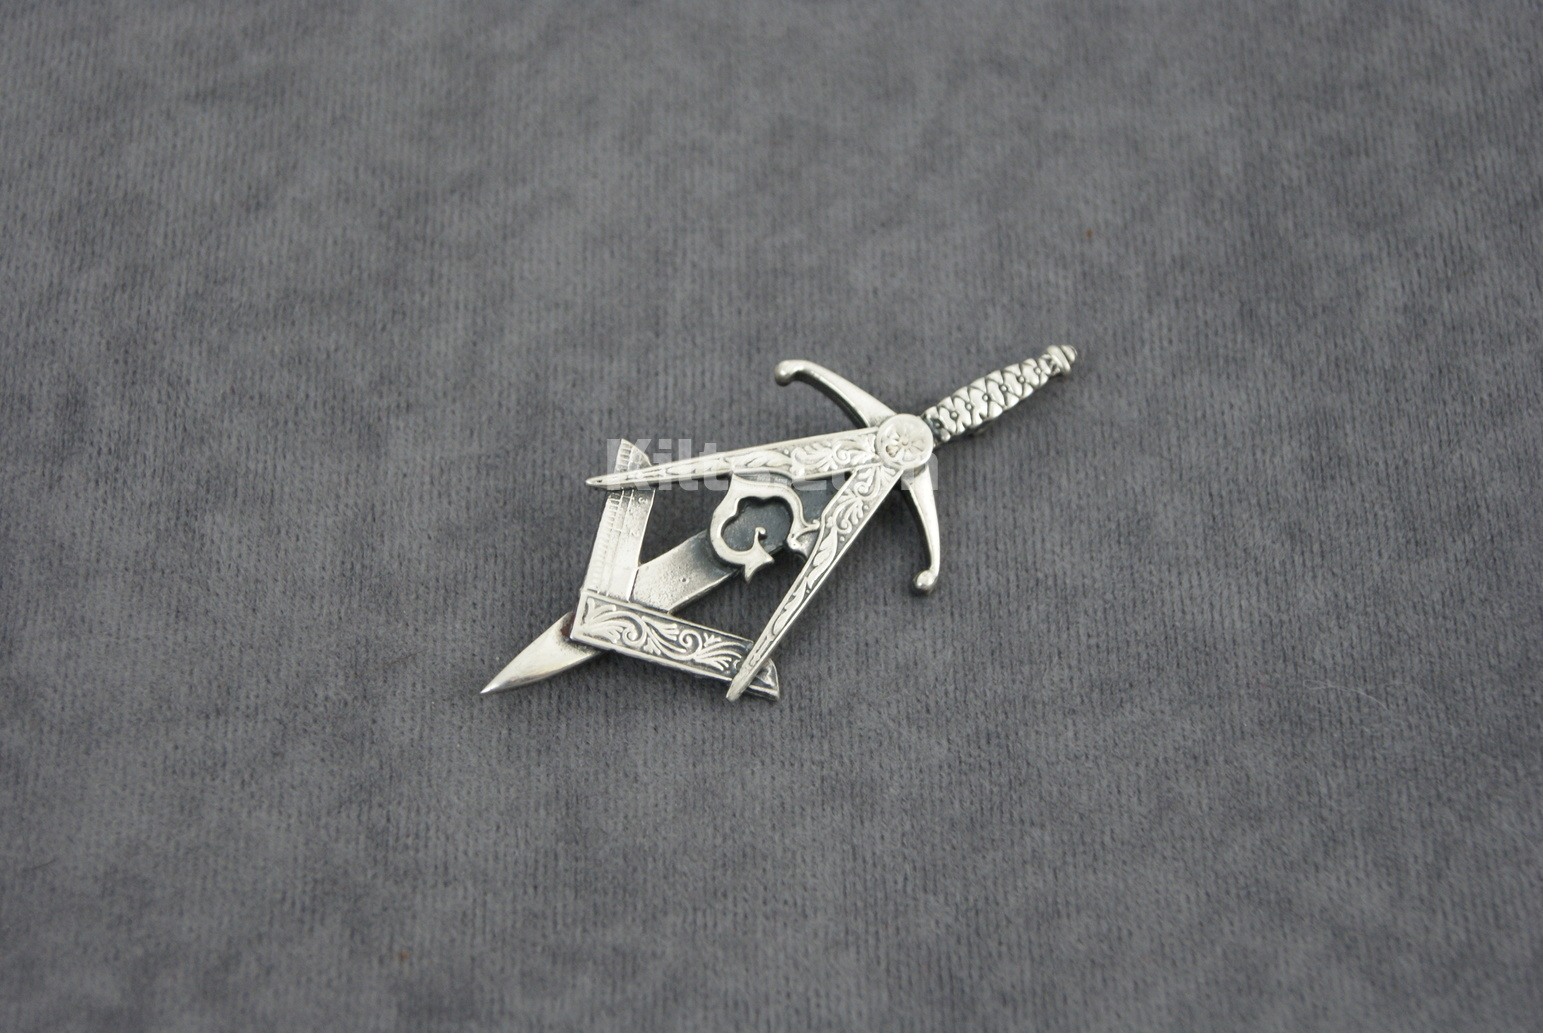 Looking for a Masonic Kilt Pin?